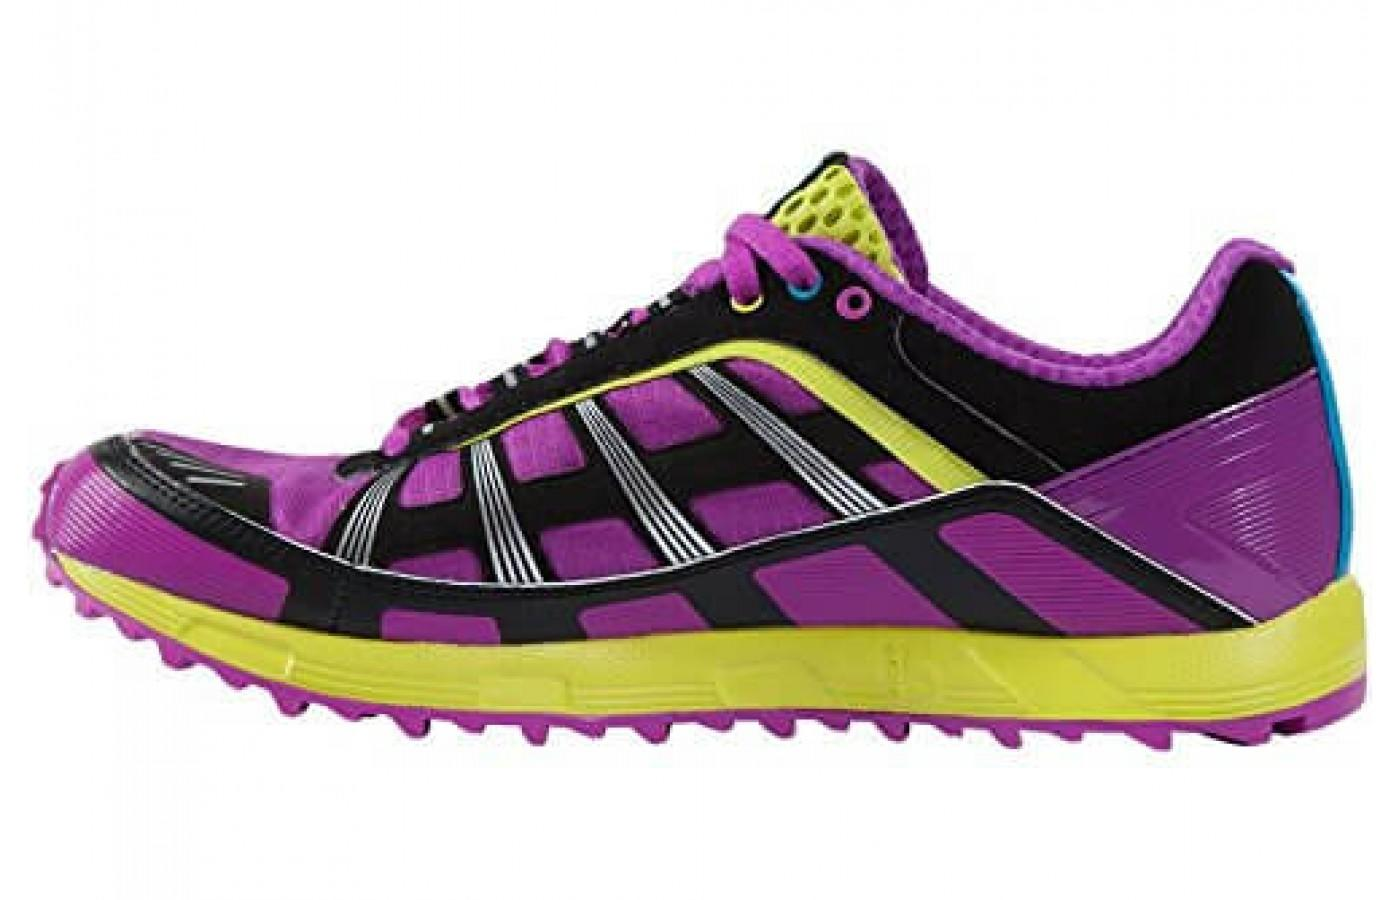 Great side view of the vibrant color choice and the thick, protective outsole